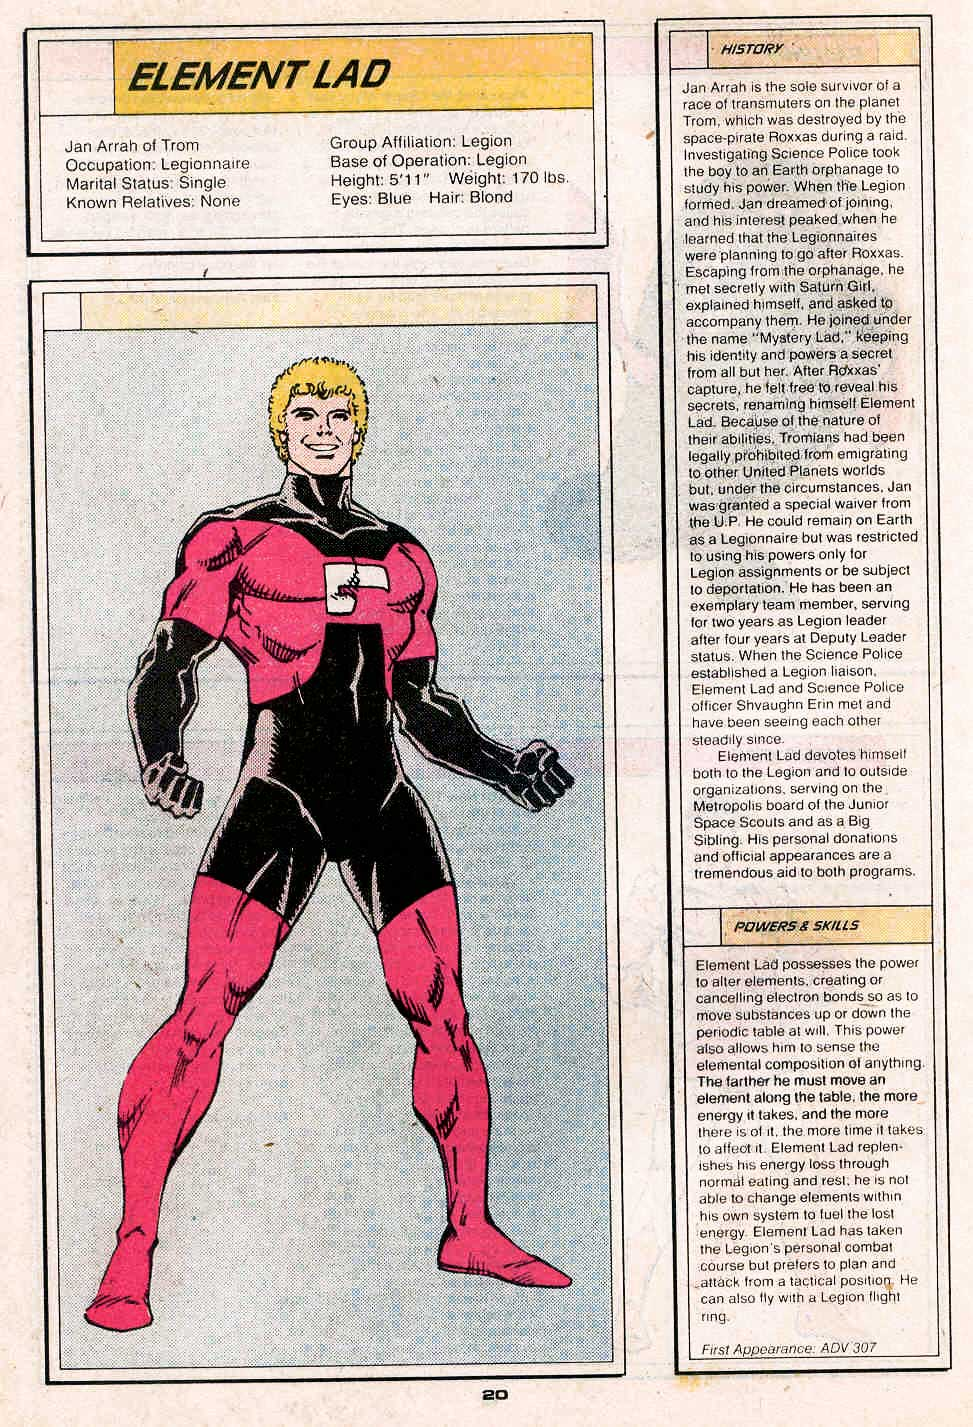 Element Lad by Ron Frenz and Colleen Doran - Who's Who in the Legion of Super-Heroes #2